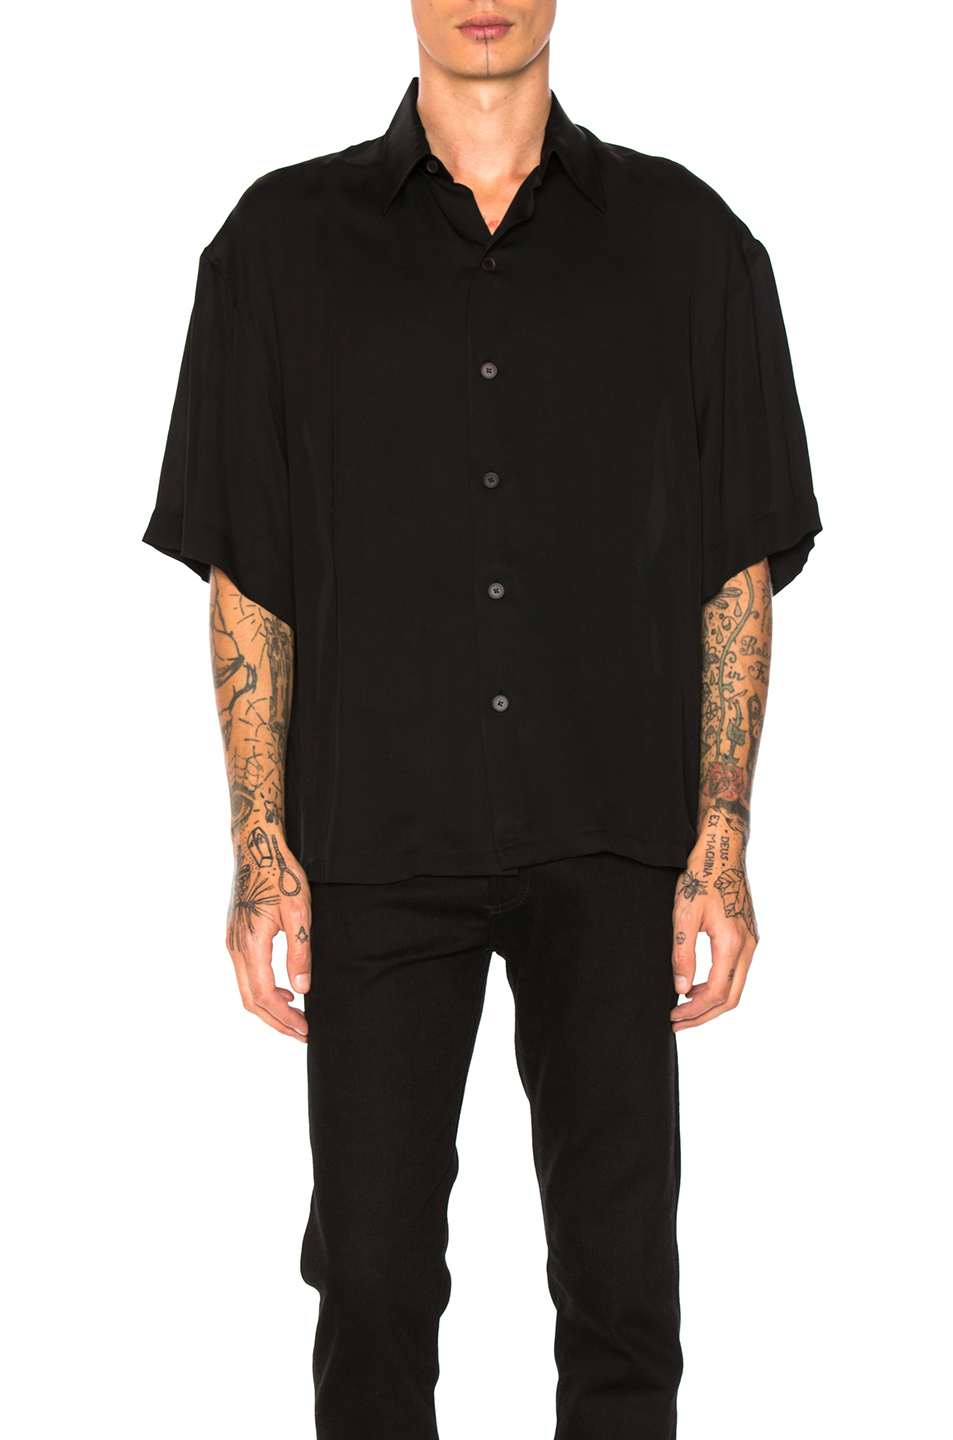 Photo of Lanvin Oversize Short Sleeve Shirt in Black - shop Lanvin menswear